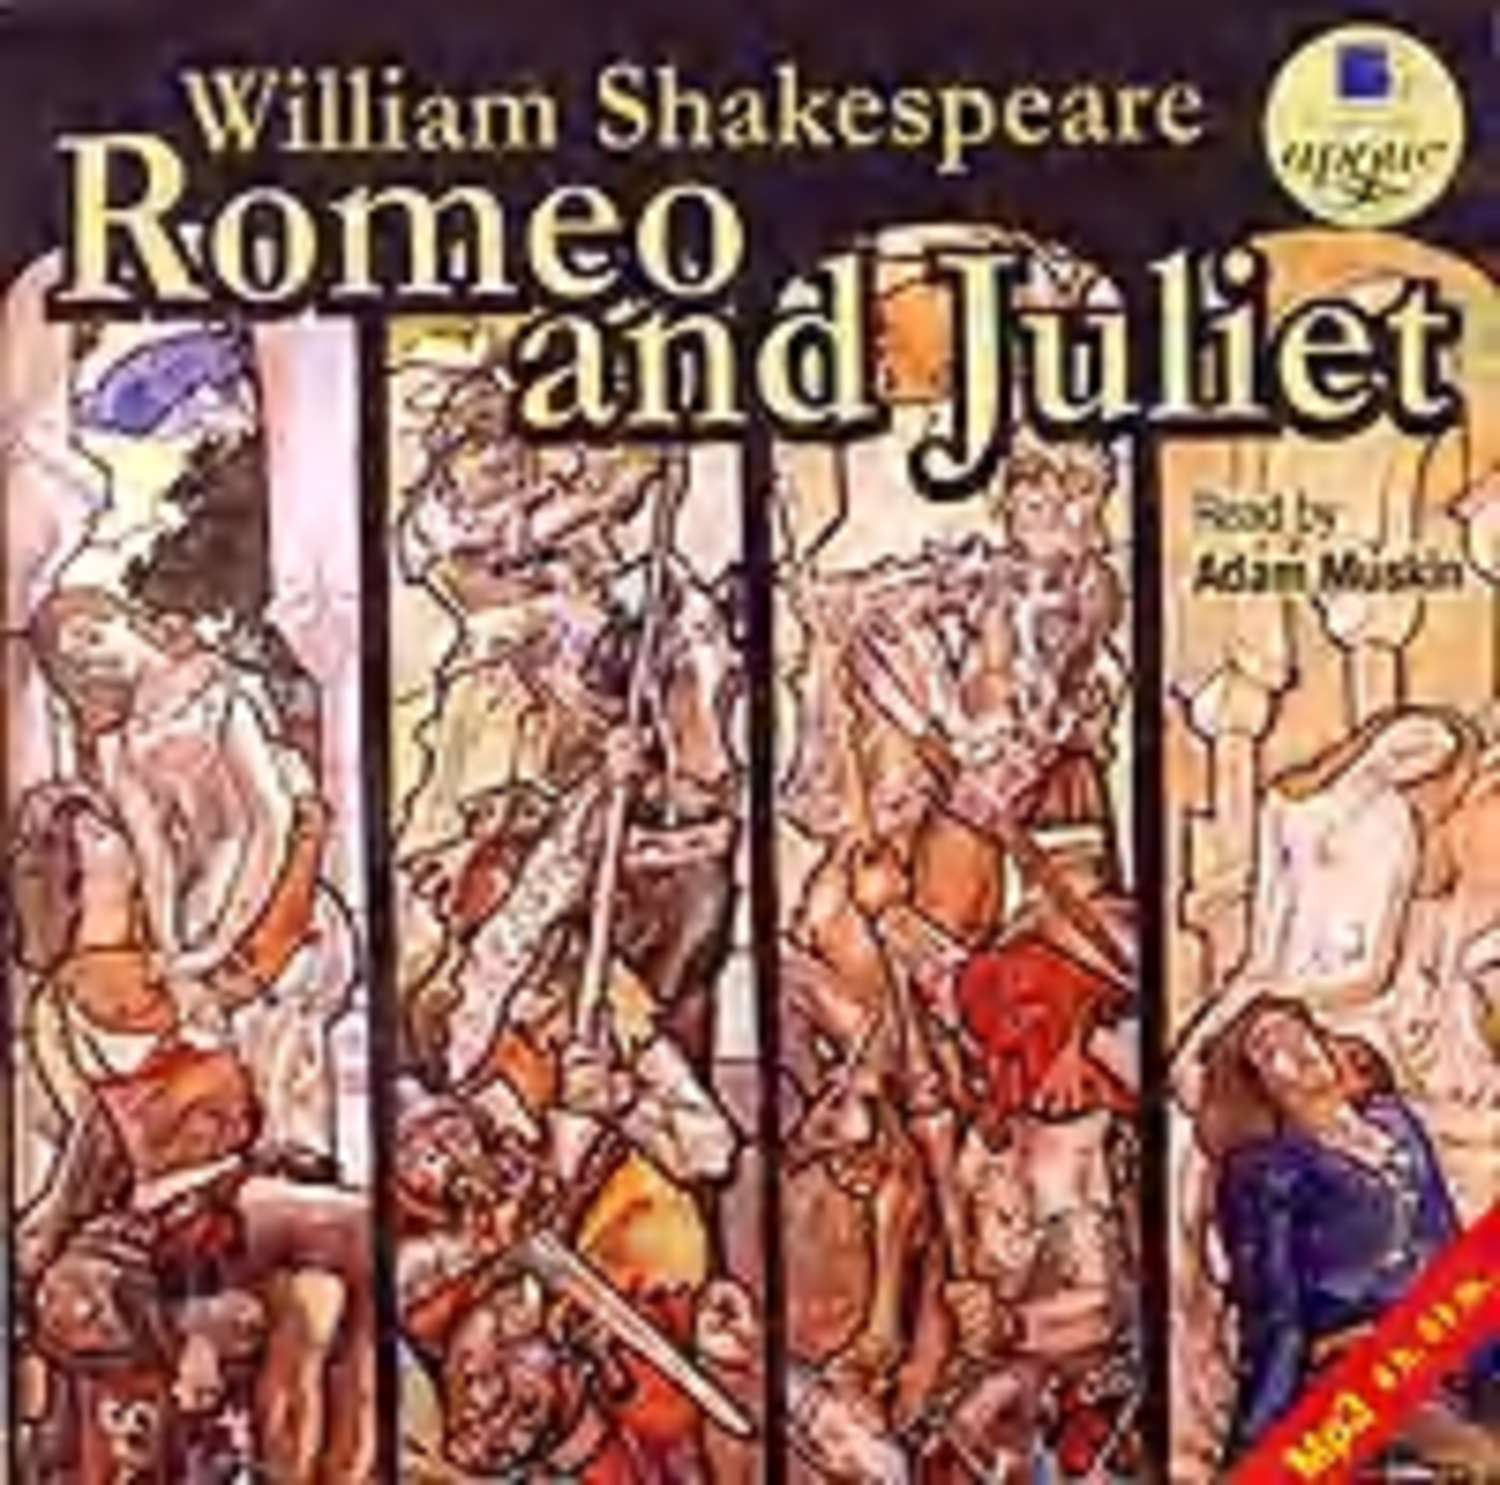 an analysis of the theme of chaos in romeo and juliet a play by william shakespeare By william shakespeare romeo and juliet balthasar servant to romeo peter servant to juliet's nurse romeo and juliet prologue.